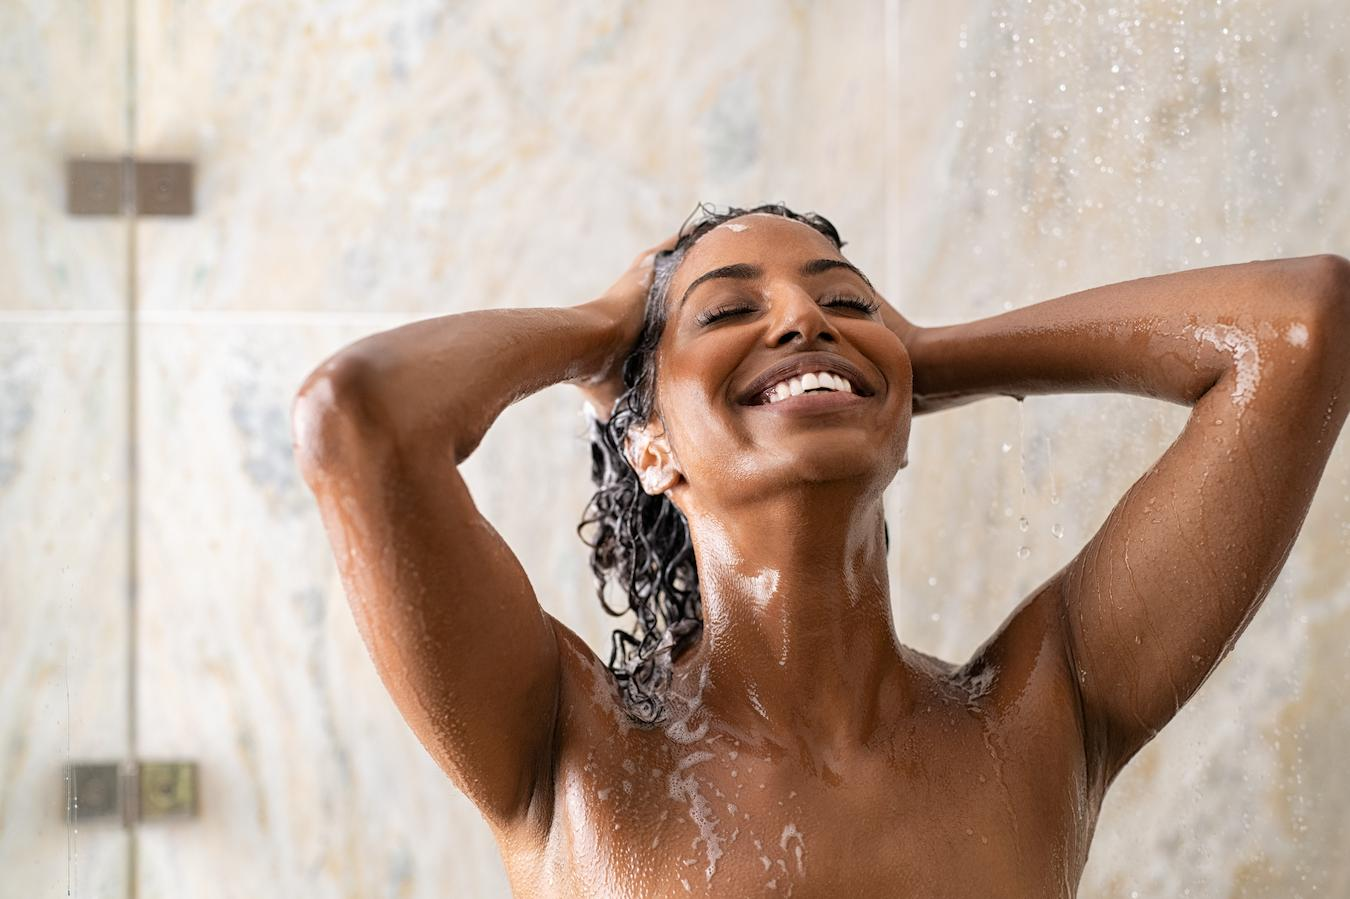 What Is Body Wash Used For